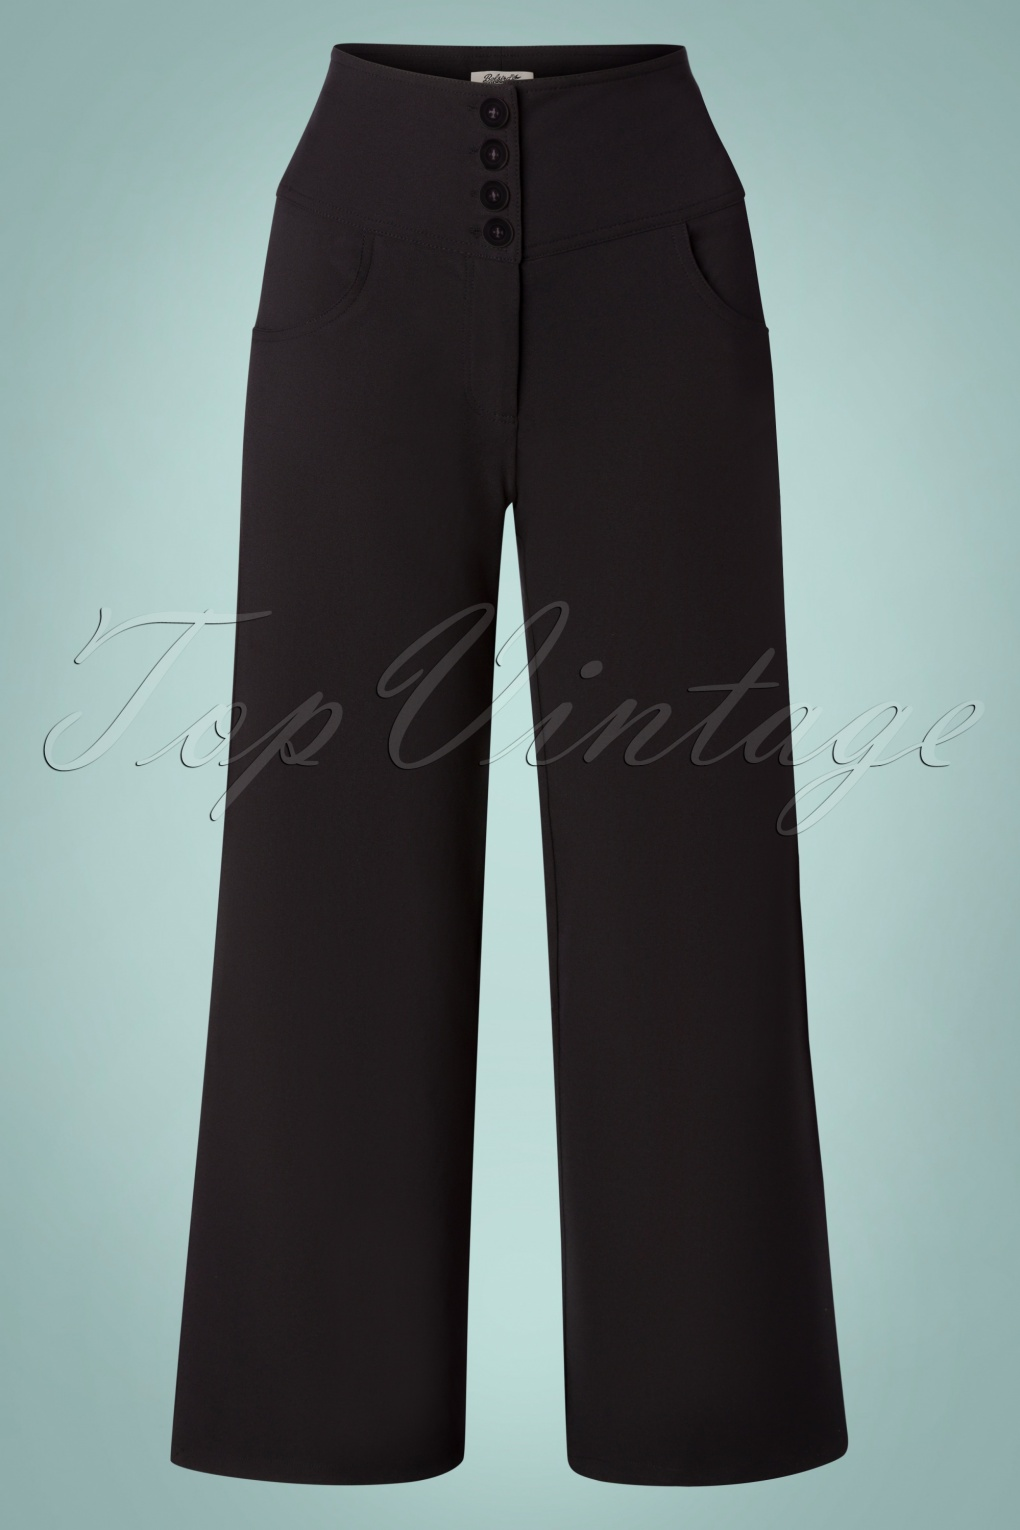 1940s Swing Pants & Sailor Trousers- Wide Leg, High Waist 40s Charline Trousers in Black £58.43 AT vintagedancer.com